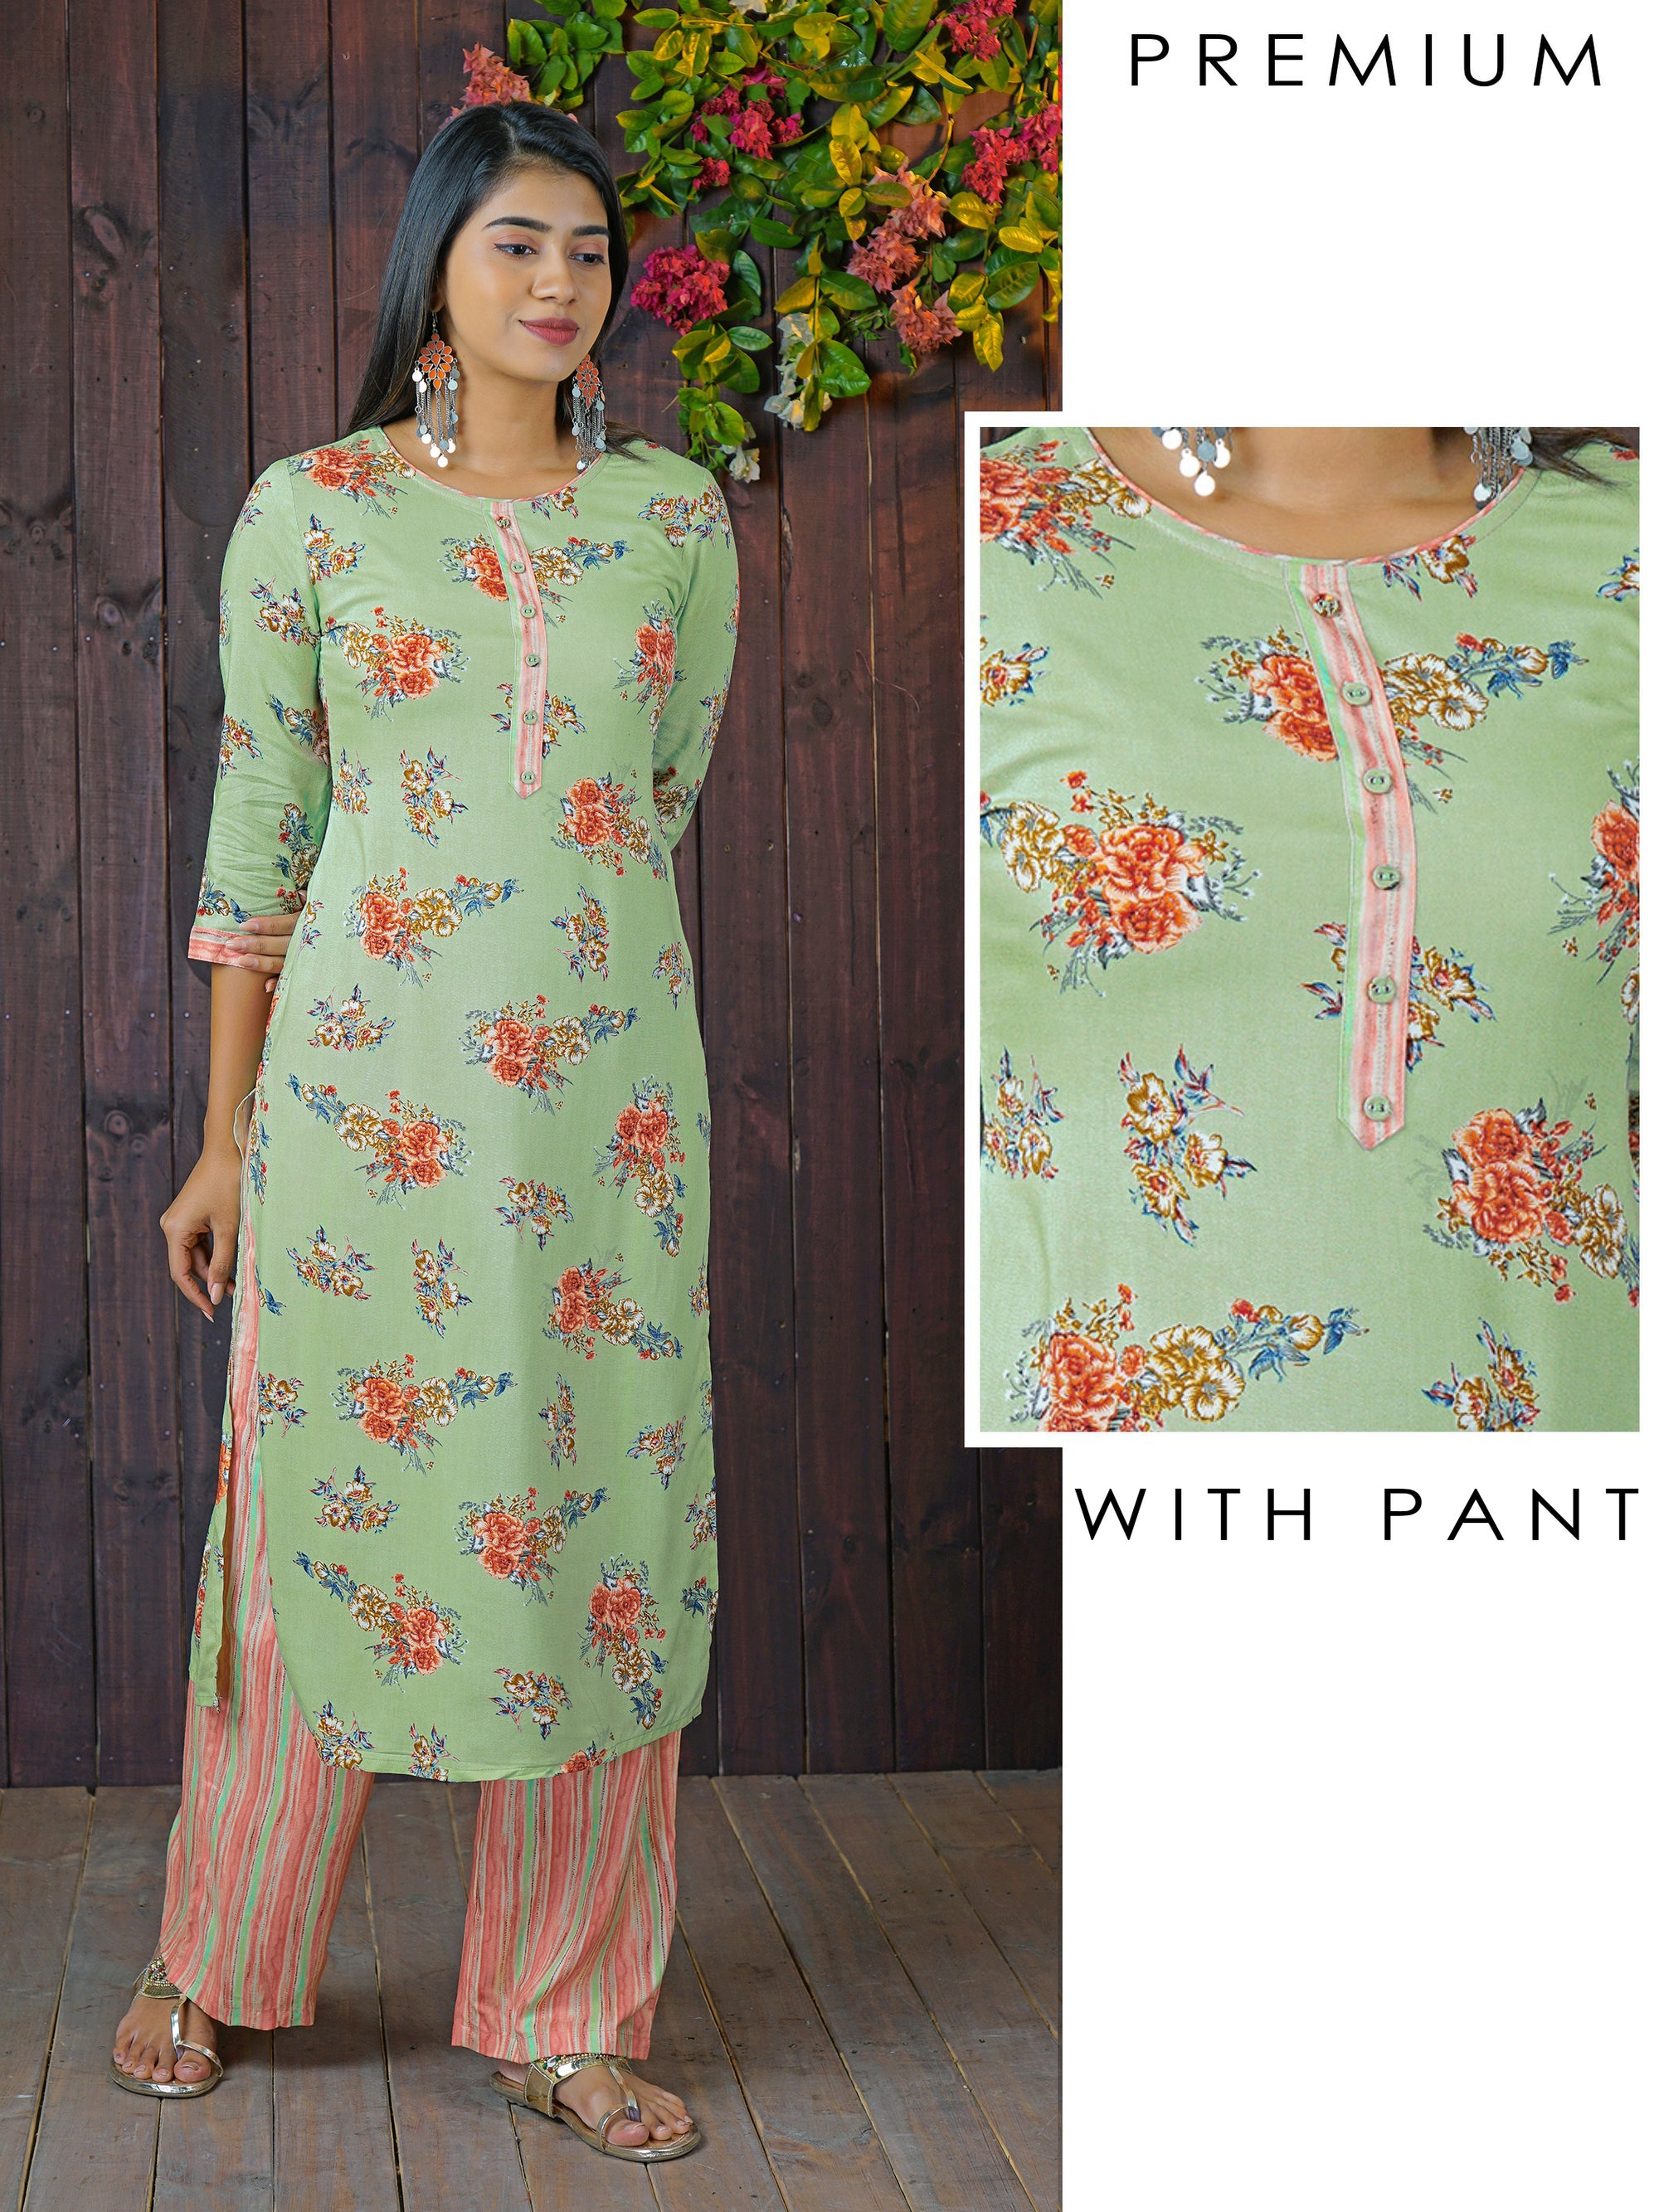 Vibrant Floral Printed Kurti & Multi-Color Striped Pant Set